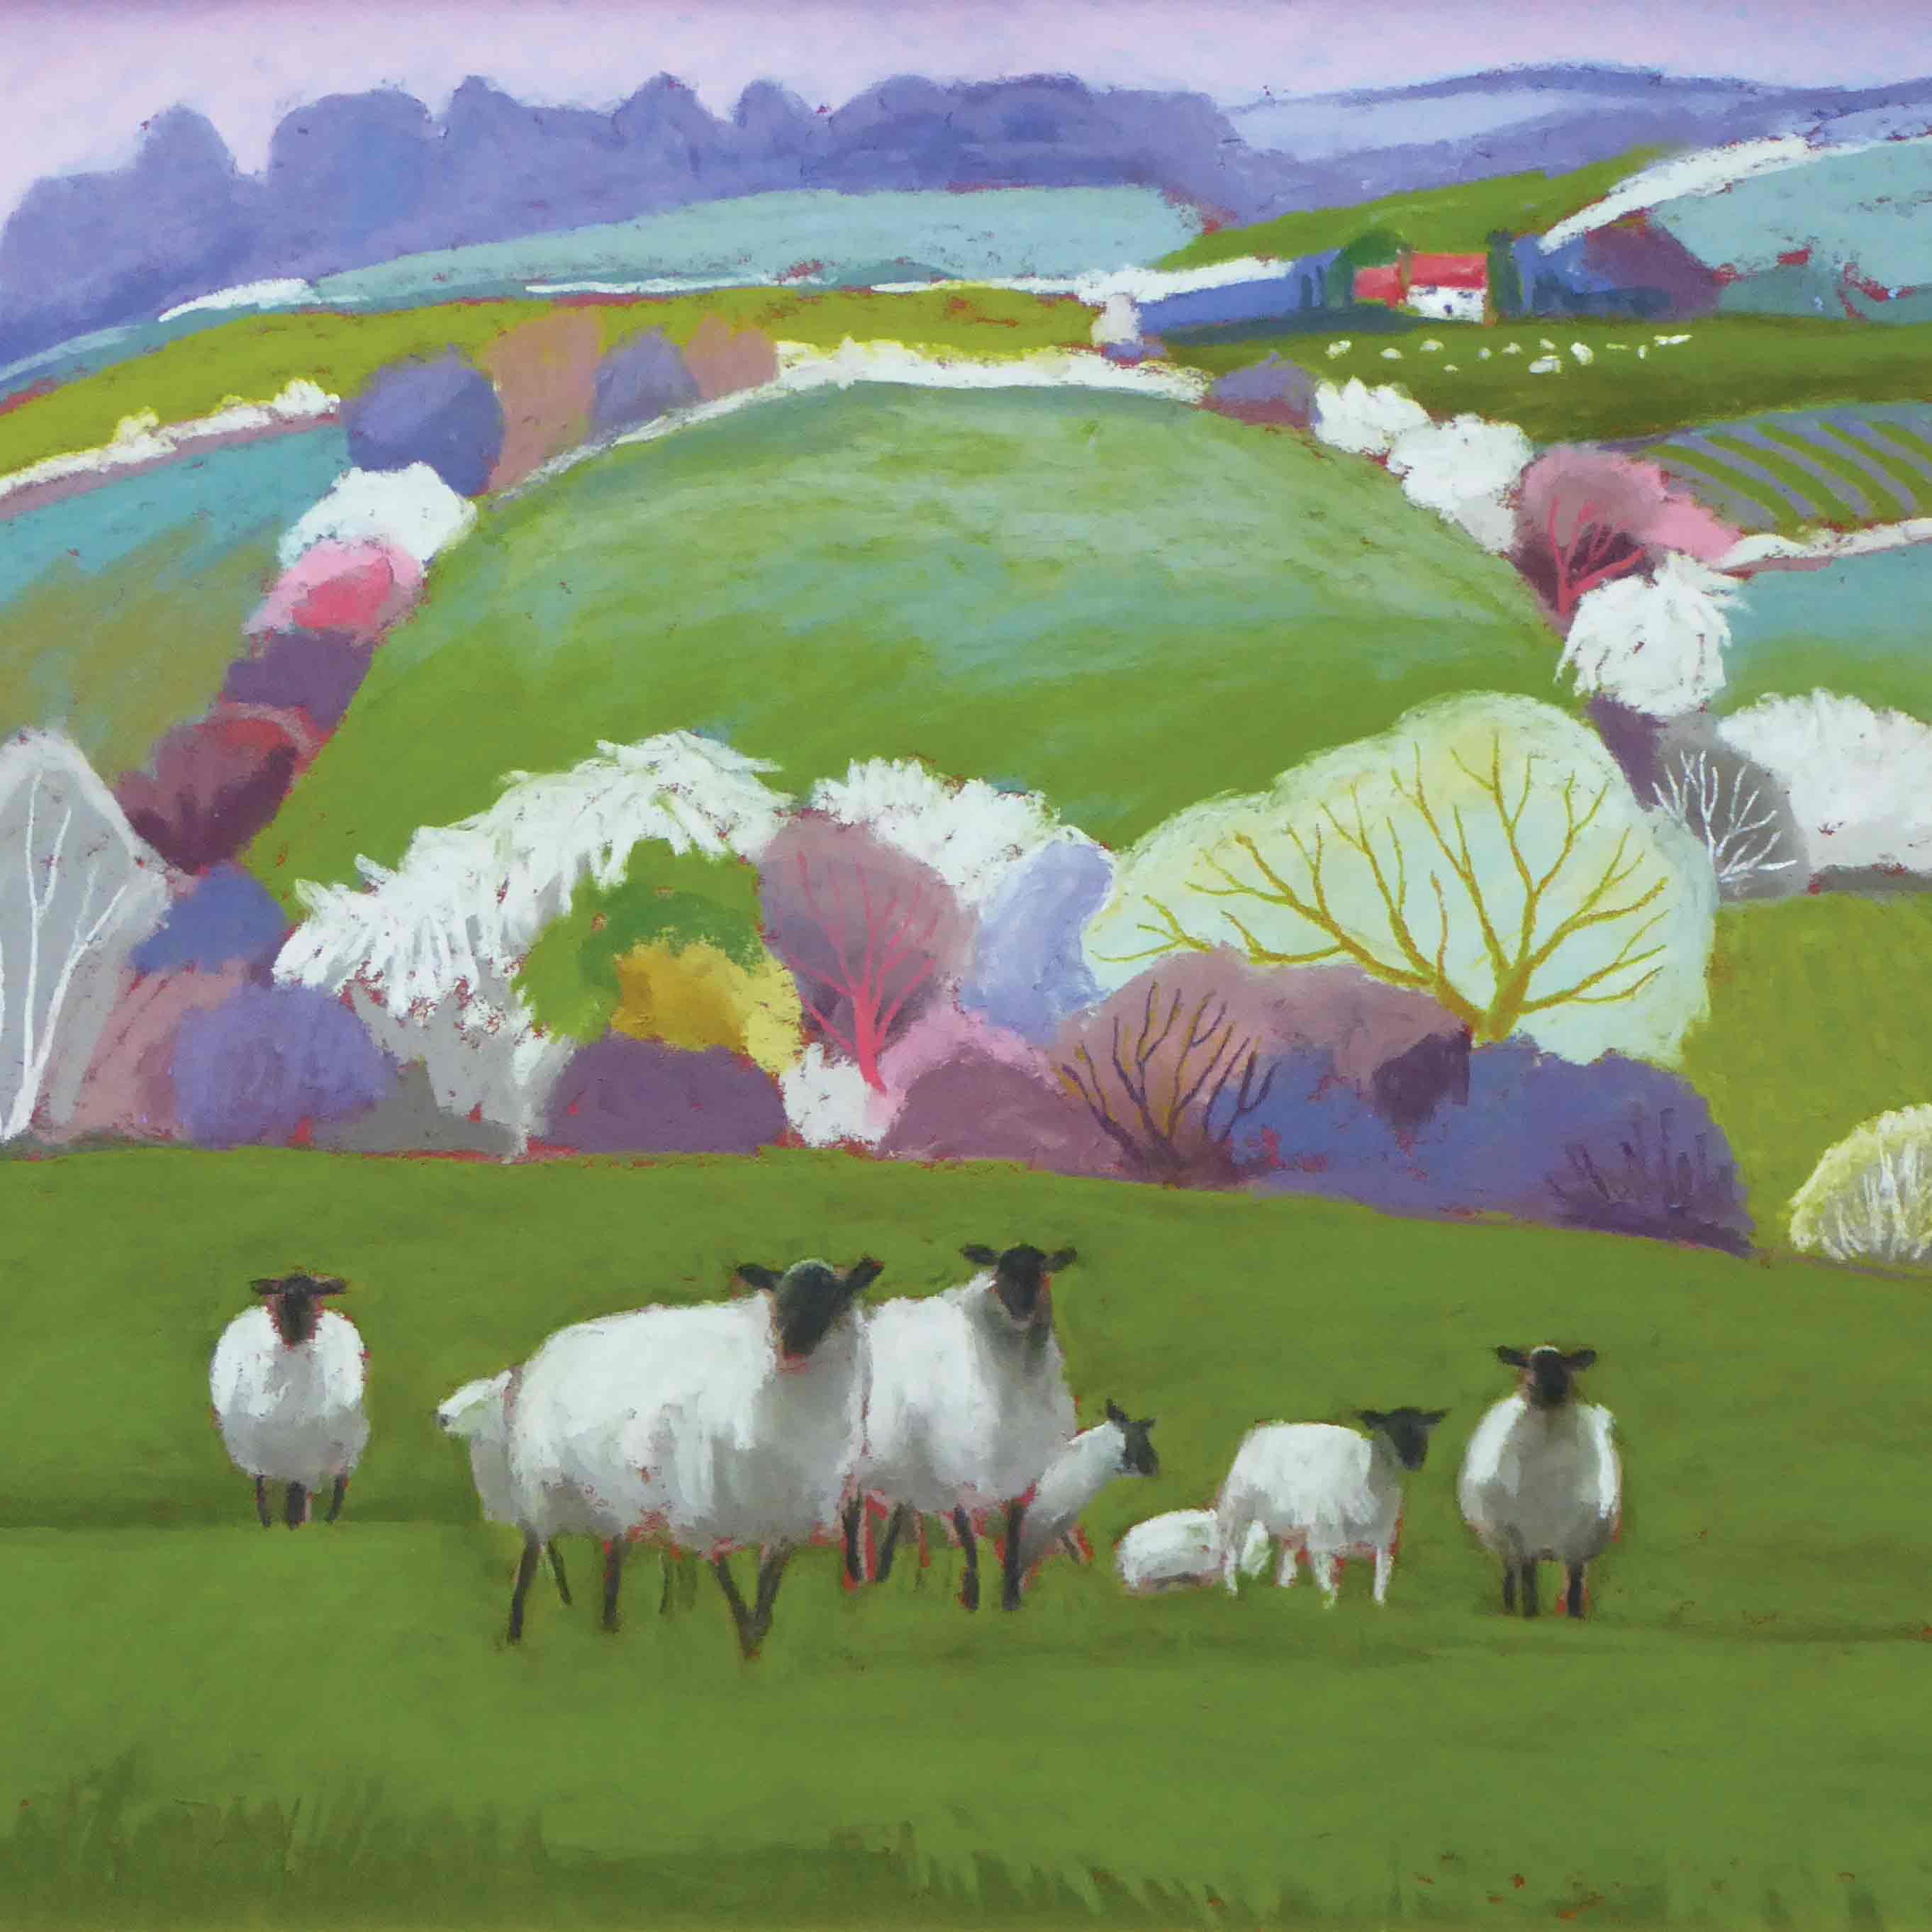 Art Greeting Card by Sue Campion, A Group of Shropshires, Pastel, Summer landscape with sheep